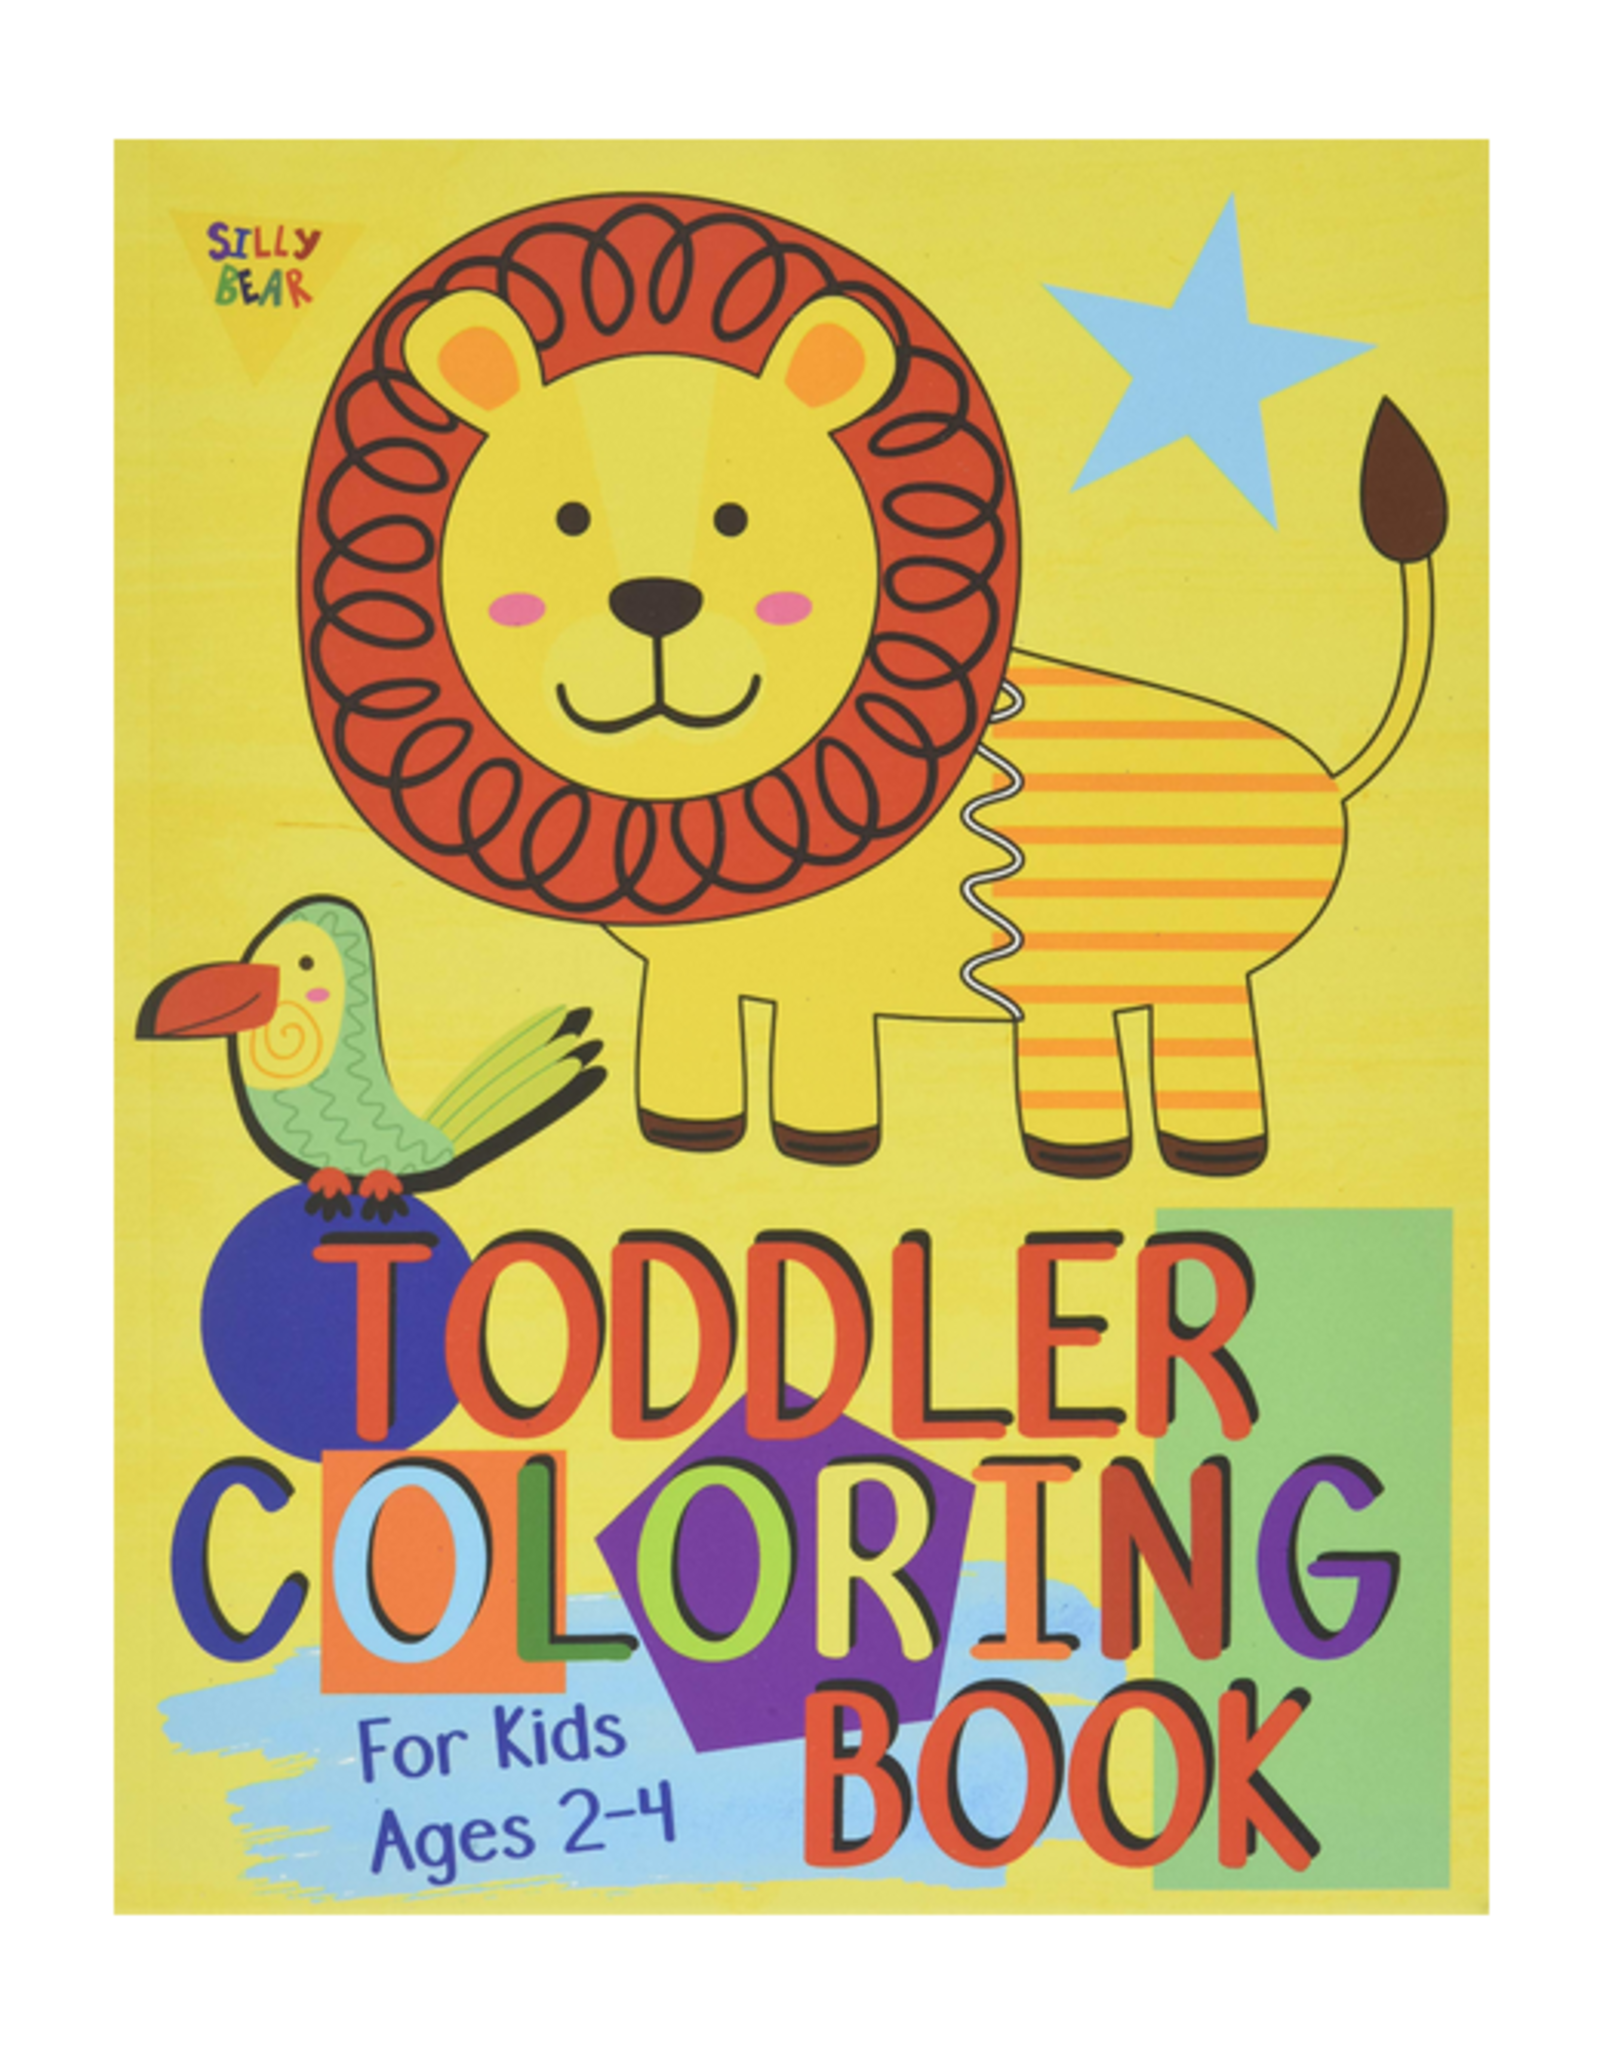 Silly Bear Colouring Book for Kids, Shapes, Letters, Numbers & Animals